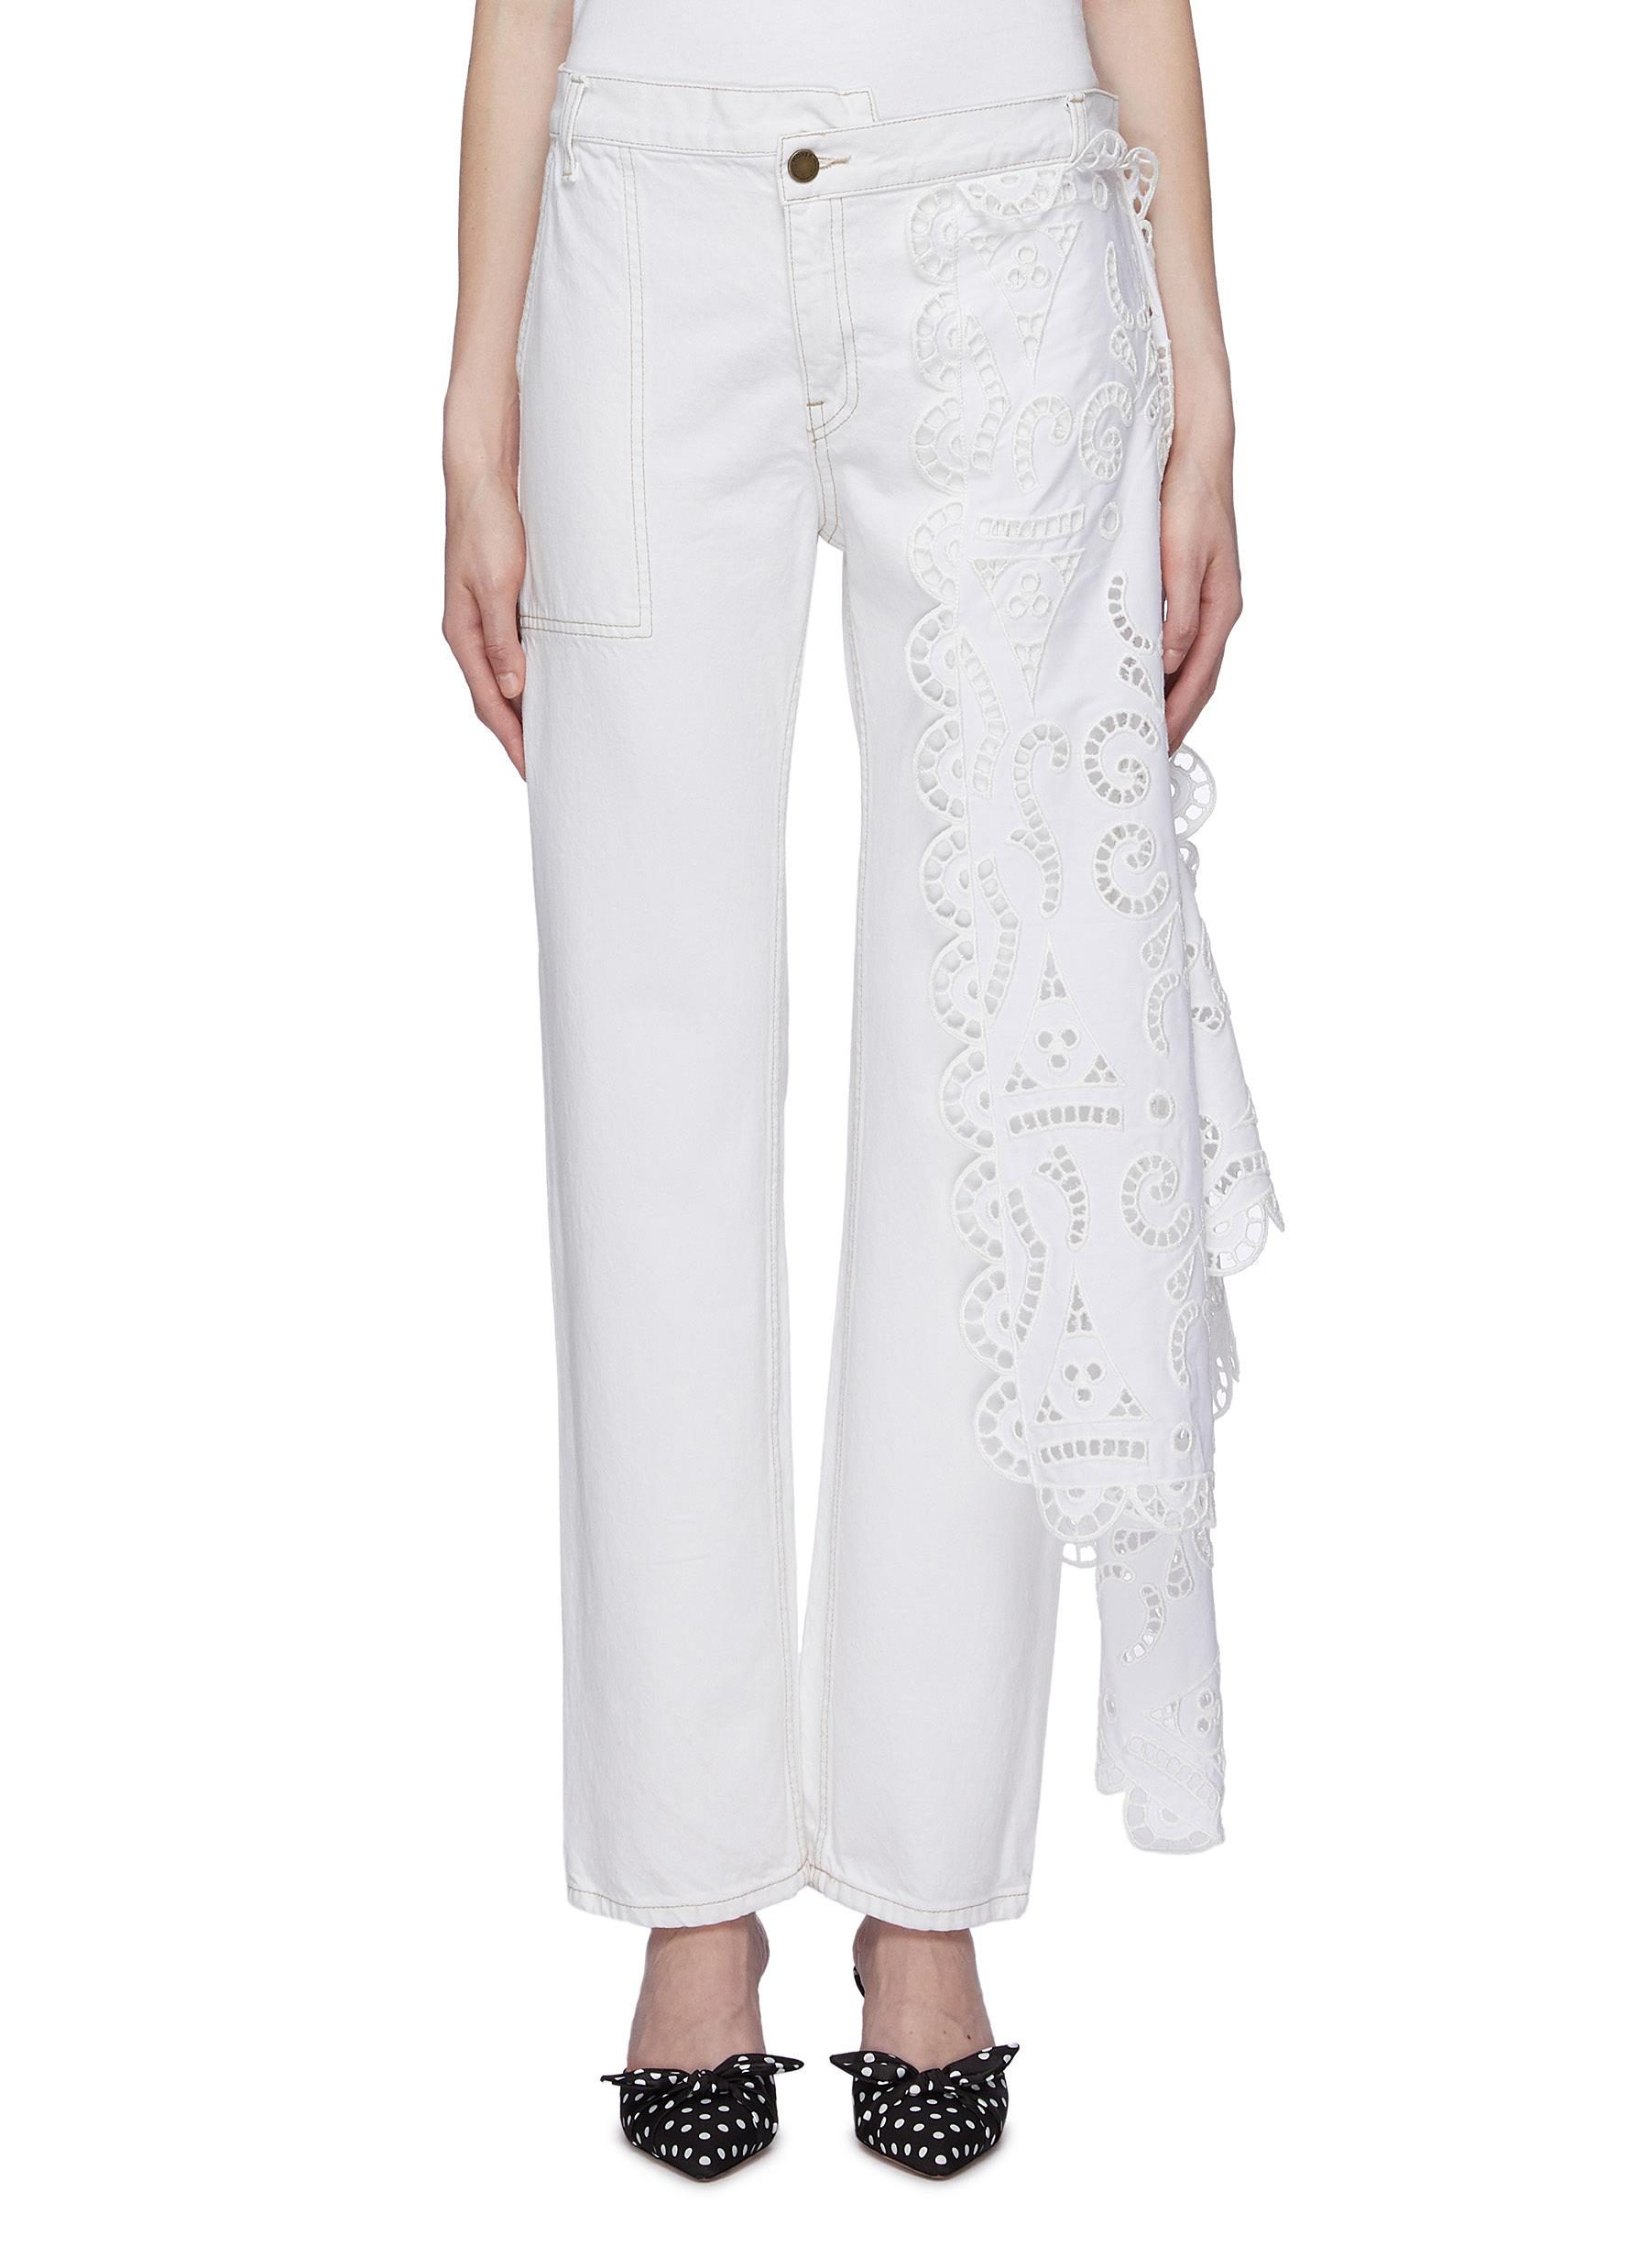 Louise asymmetric broderie anglaise panel staggered jeans by Monse